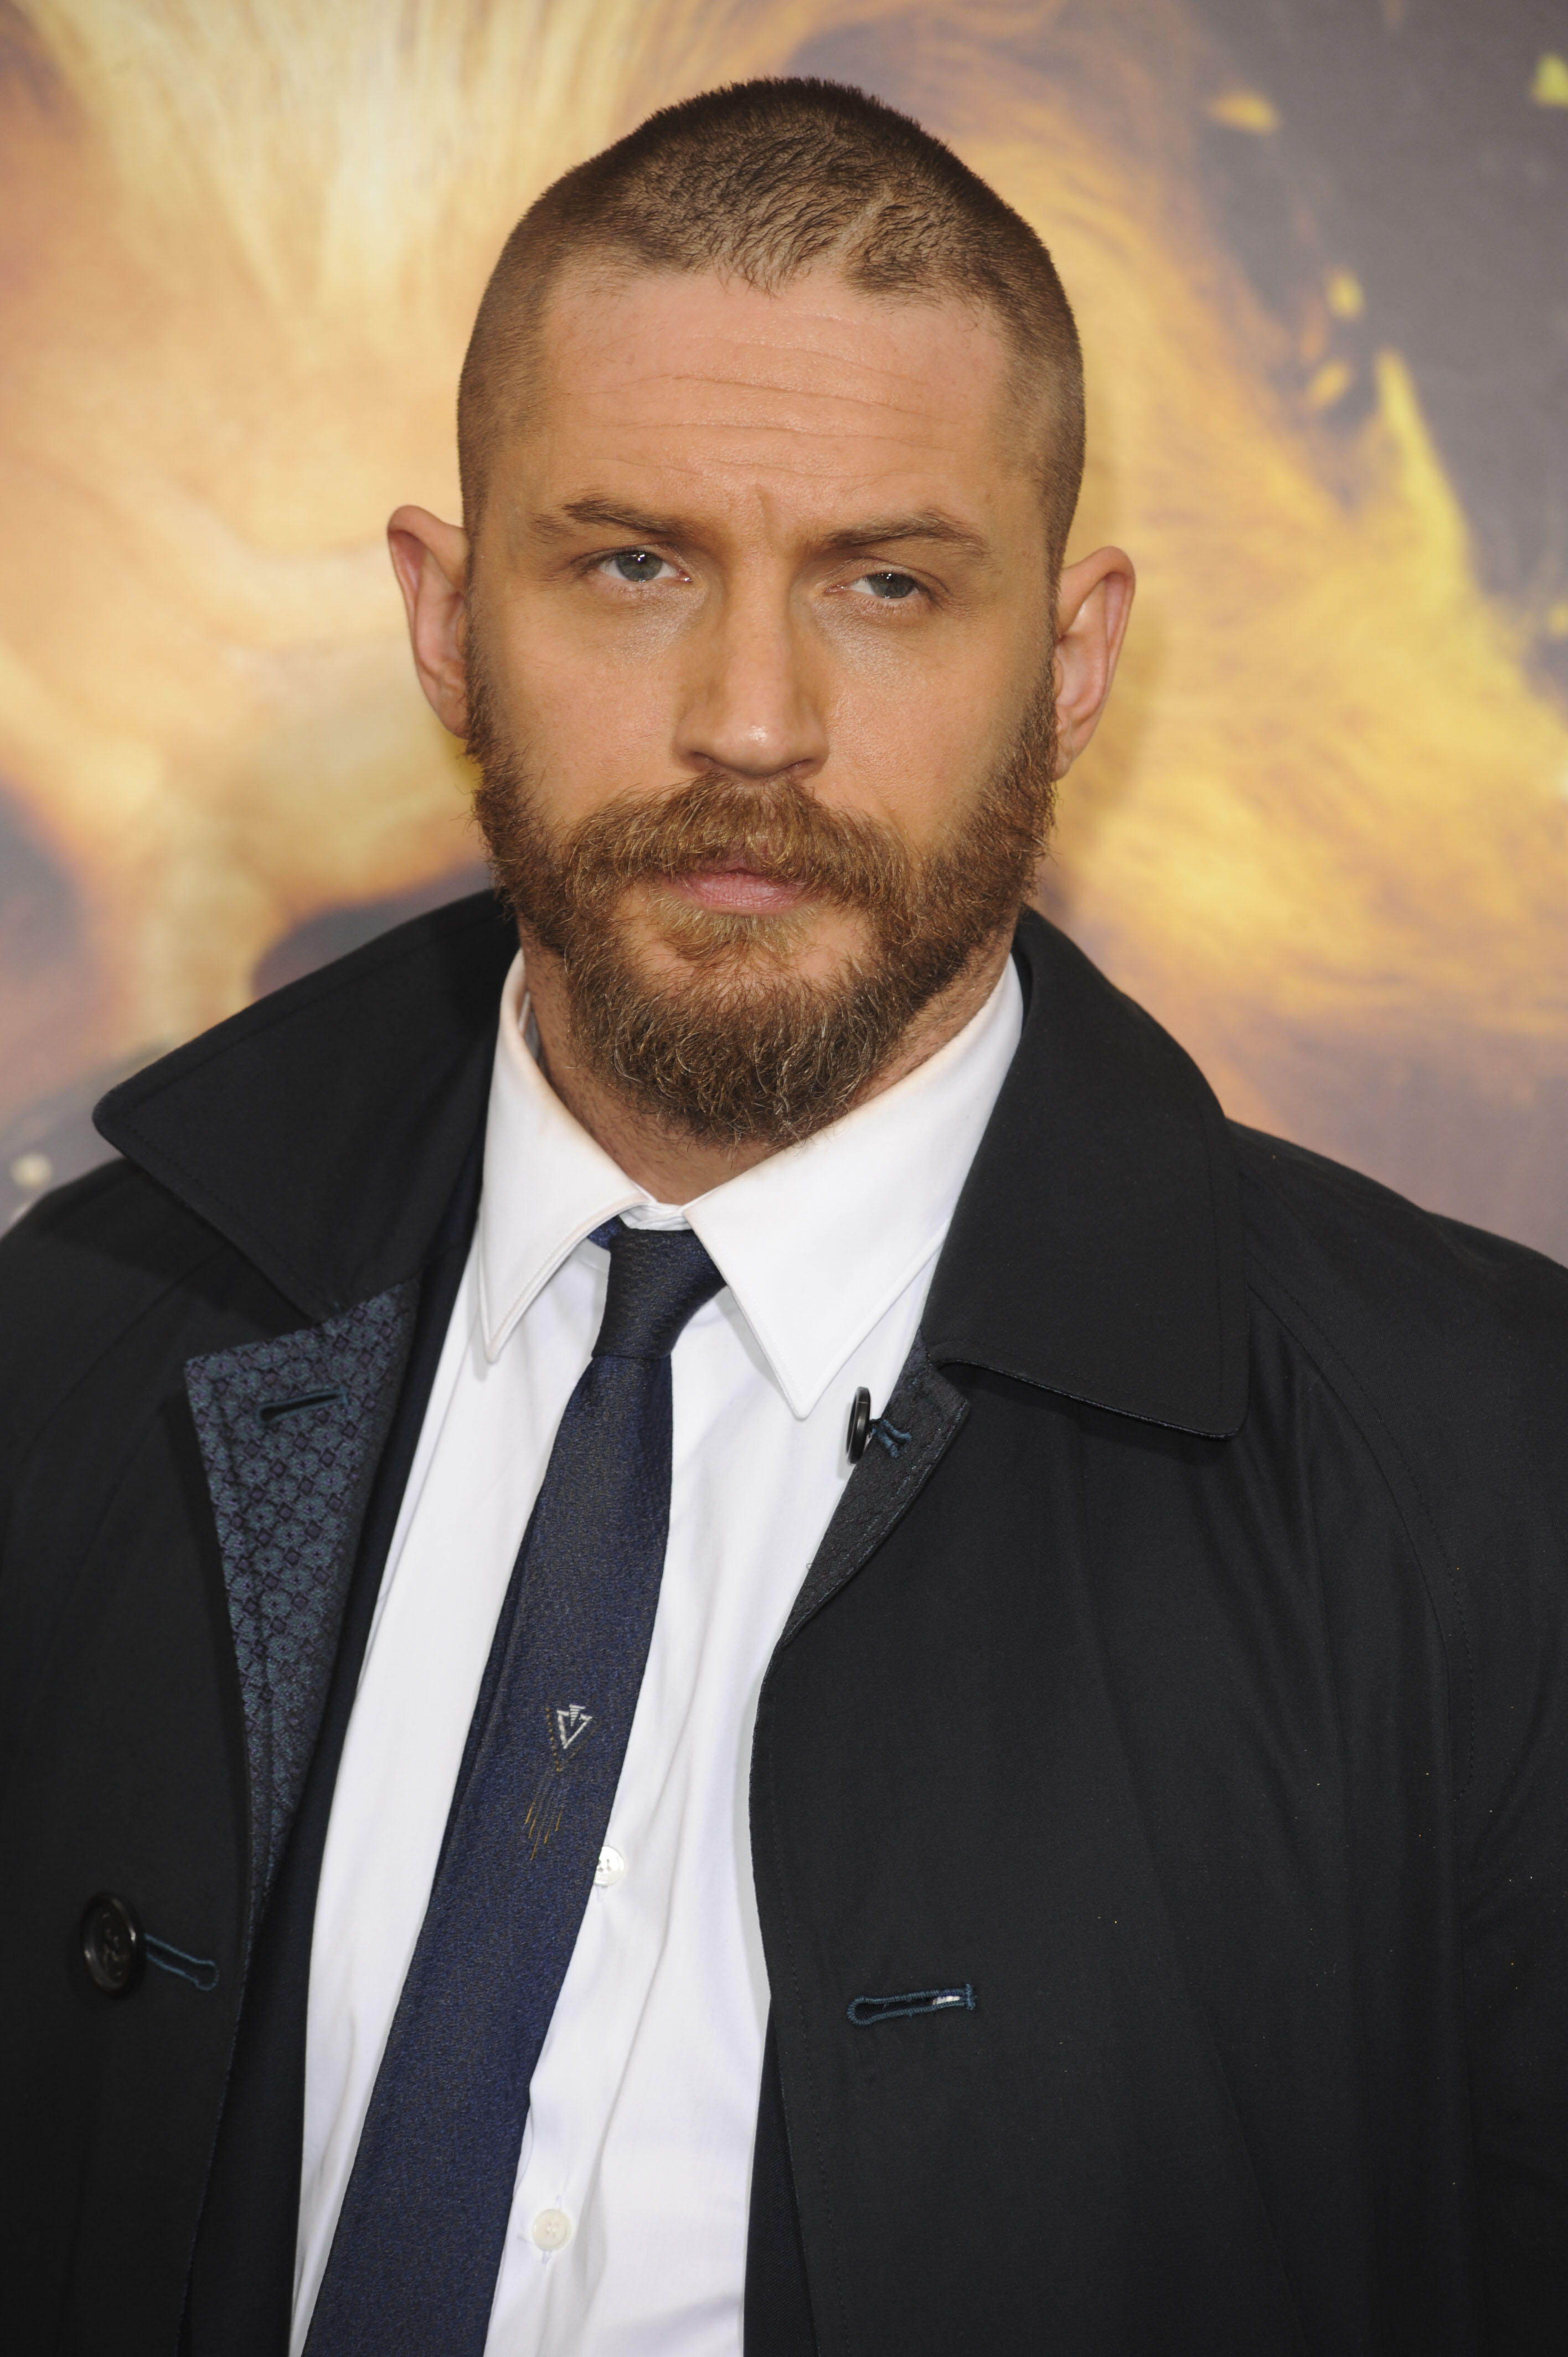 Los Angeles Iphone 7 Wallpaper Tom Hardy 313626 Wallpapers High Quality Download Free